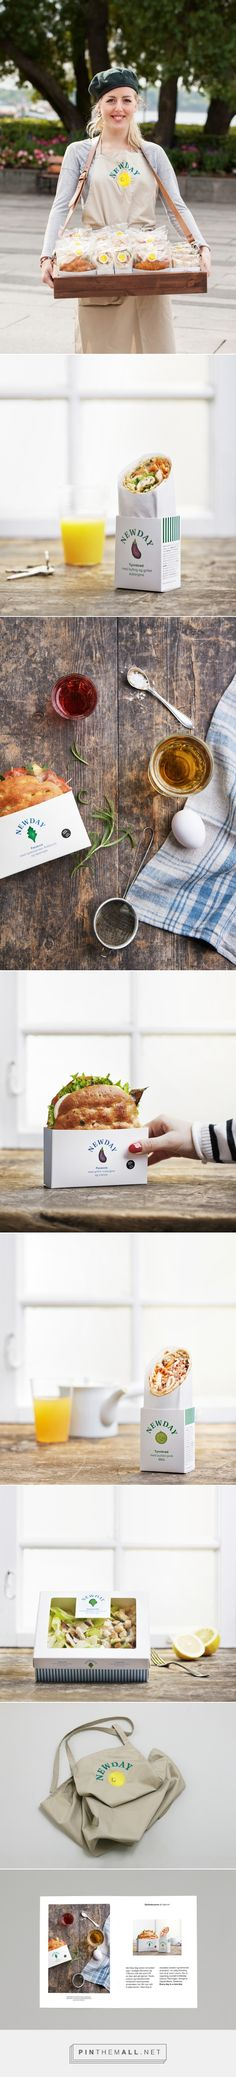 New Day Packaging / New Day is a healthy, tasty alternative to convenience food by Gøril Torske, Sigrid Therese Pfanz